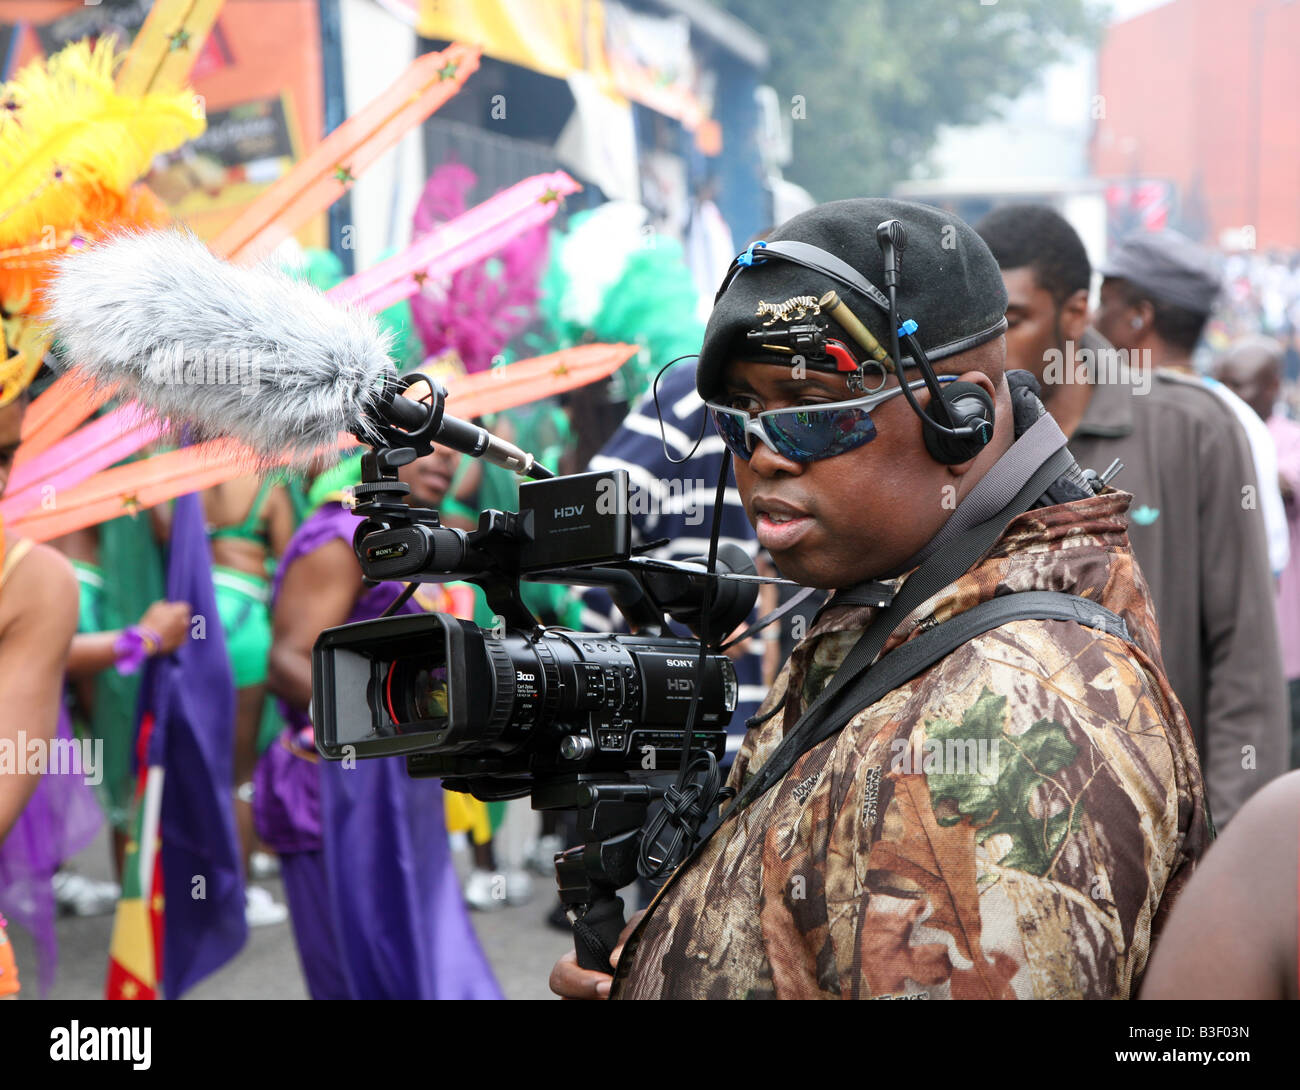 A black man wearing sunglasses, beret and camouflage uses a video camera to film the Notting Hill Carnival - Stock Image